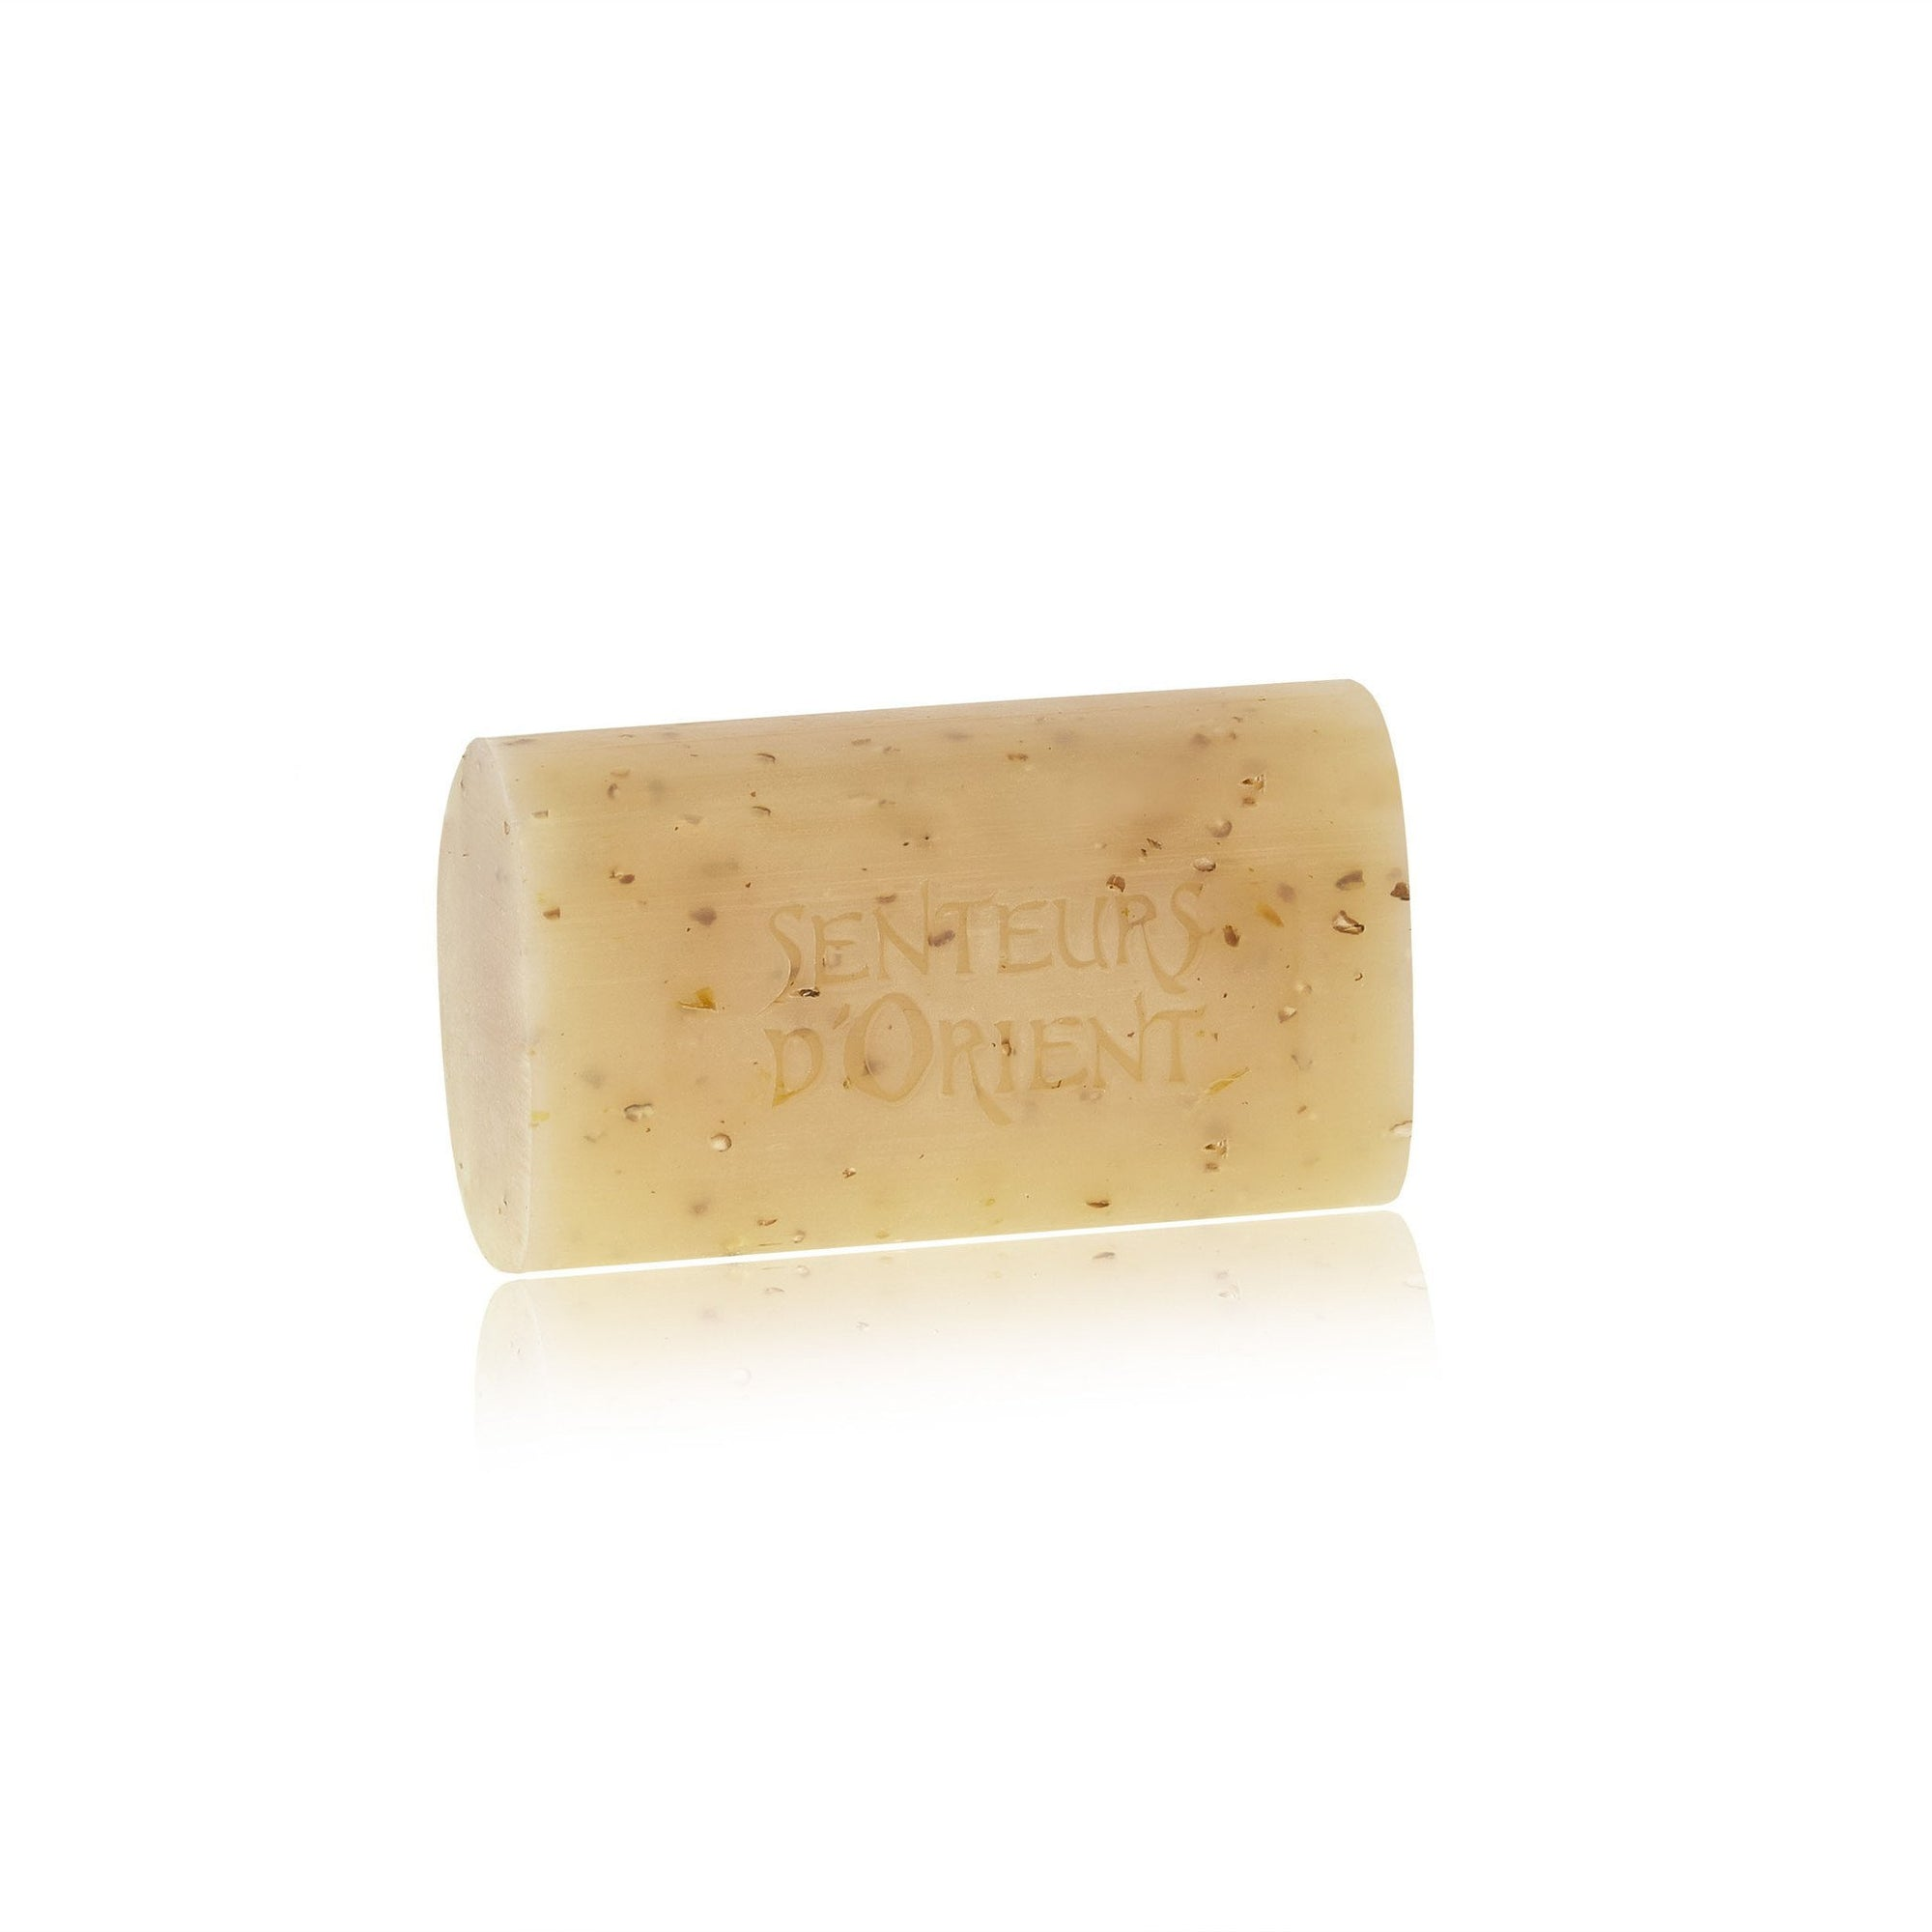 Cut Bar Soap - Almond Exfoliant Rough  210g